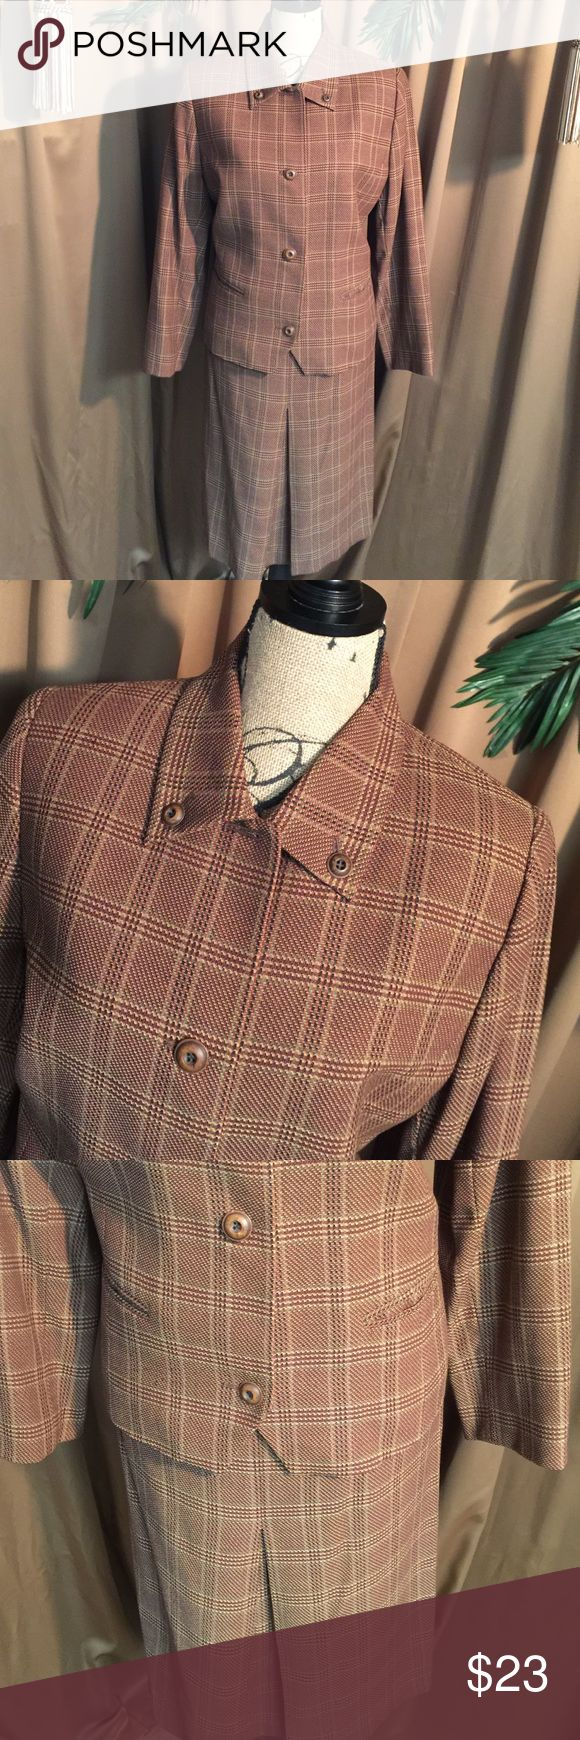 🆕➡️ 100% plaid wool 2- piece skirt suit Very nice pre-loved two-piece skirt suit 100% wool has beautiful red and brown undertones of plaid. This is a vintage suit with normal wearing but has more wearing life to it. Skirt has a deep pleat  in the front and it measures 26 inches from waist line to hemline. It has beautiful wooden buttons down the front of Jacket. The size tag is missing in the jacket but I'm sure it coincides with the size of the skirt is. doncaster Skirts Skirt Sets